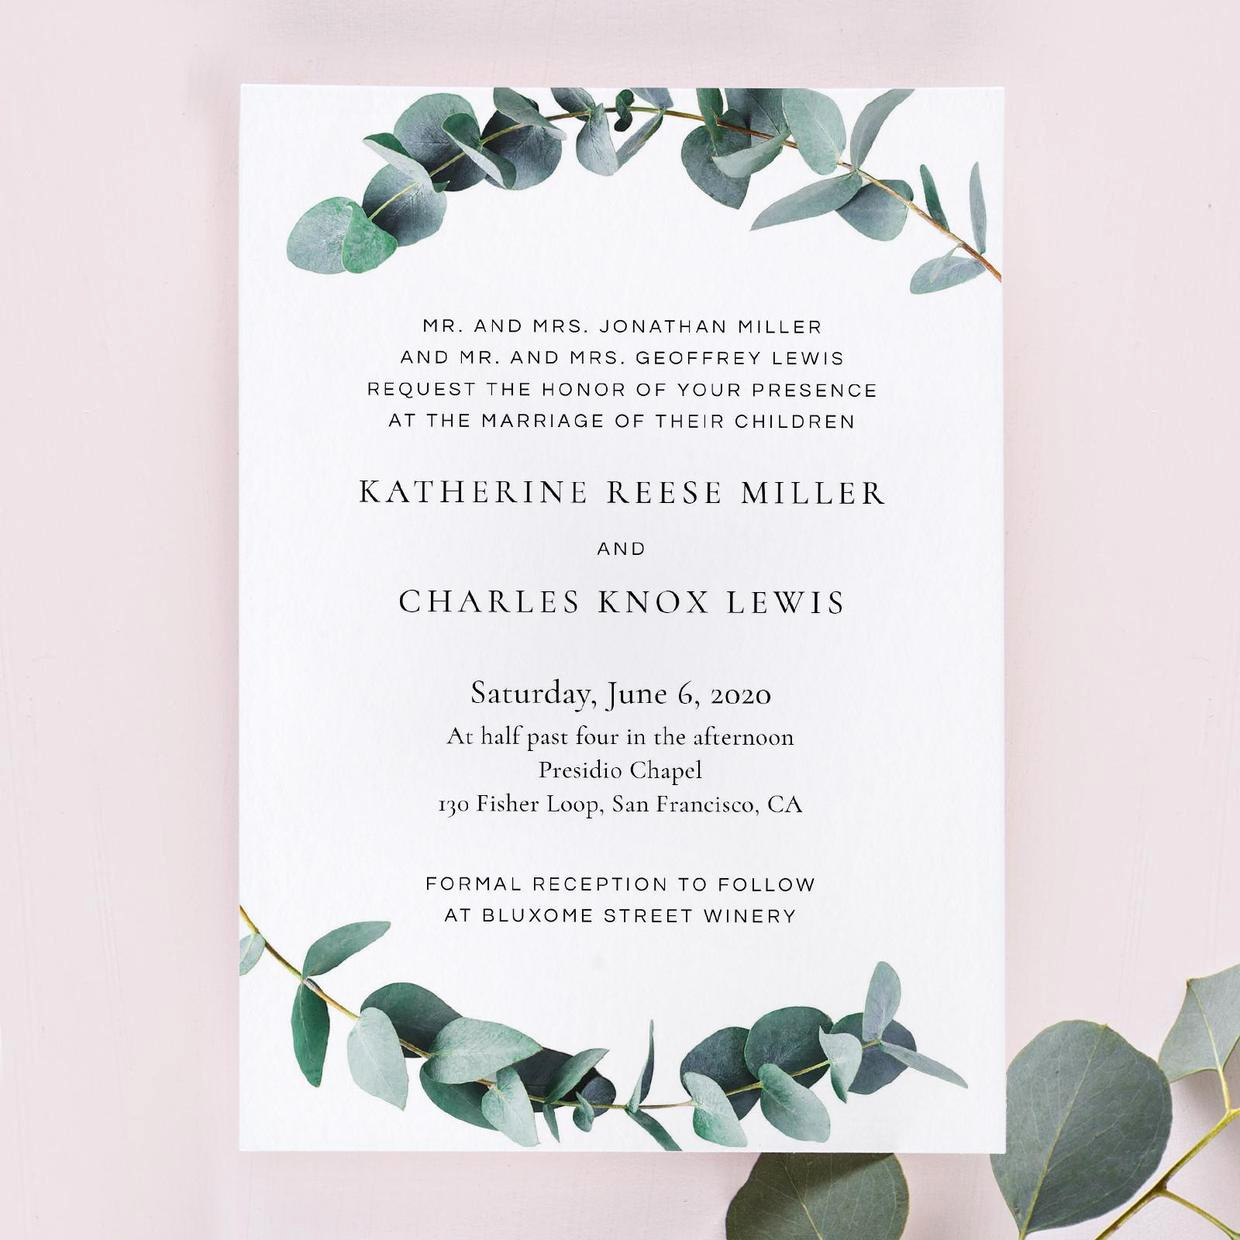 Sample Of Weeding Invitation Fresh Wedding Invitation Wording Examples In Every Style